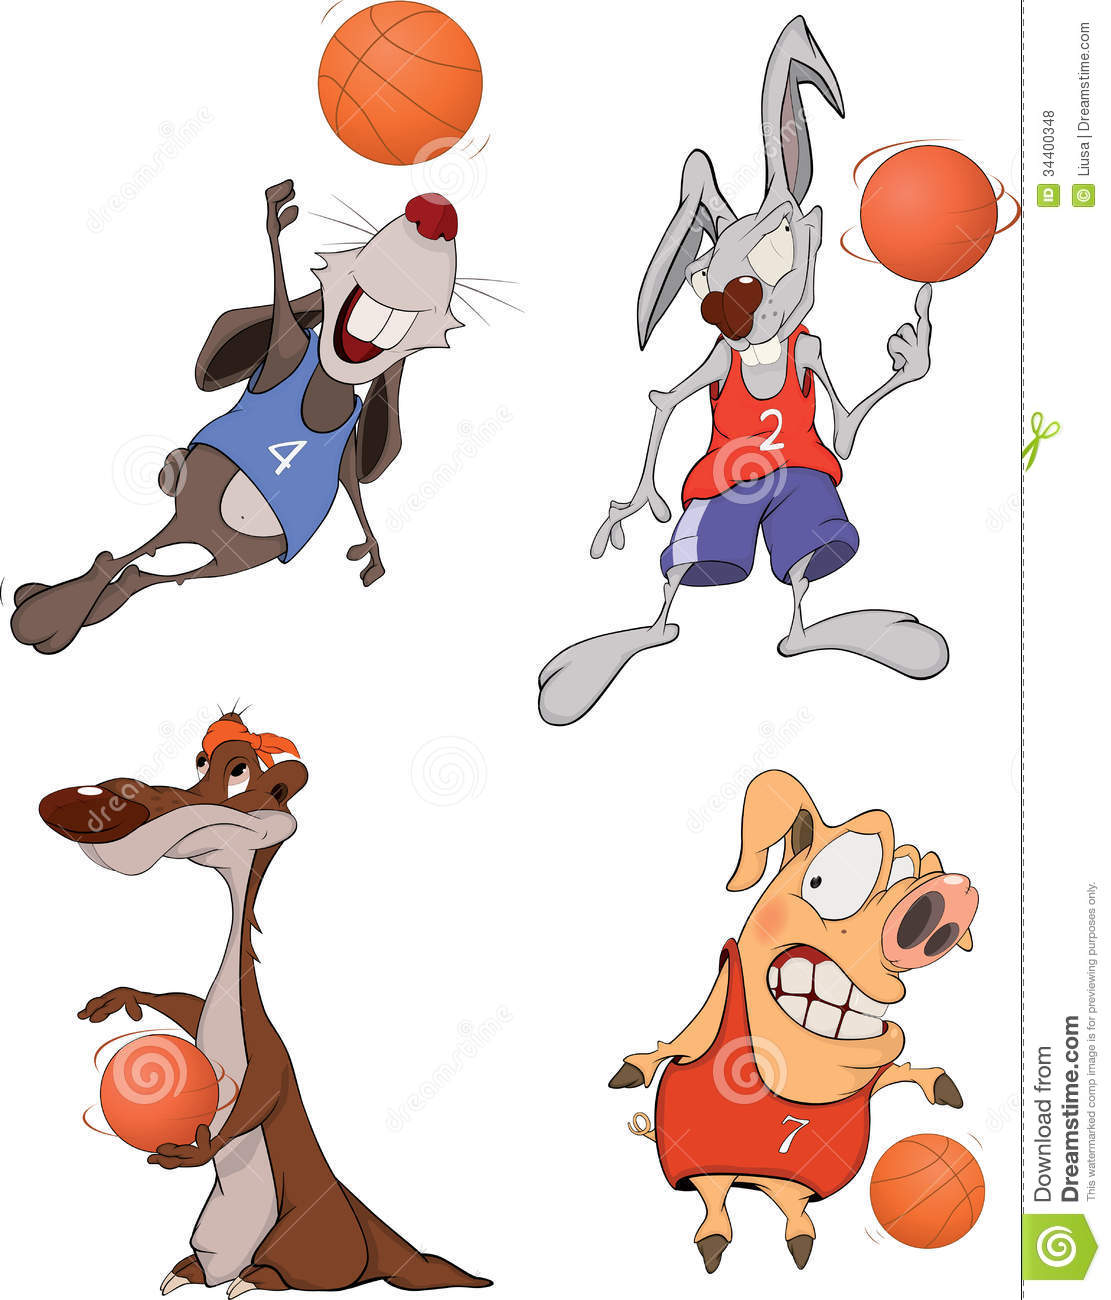 Todd Clipart 20 Fee Cliparts Download Imagenes: The Basketball Players. Clip Art. Cartoon Stock Vector